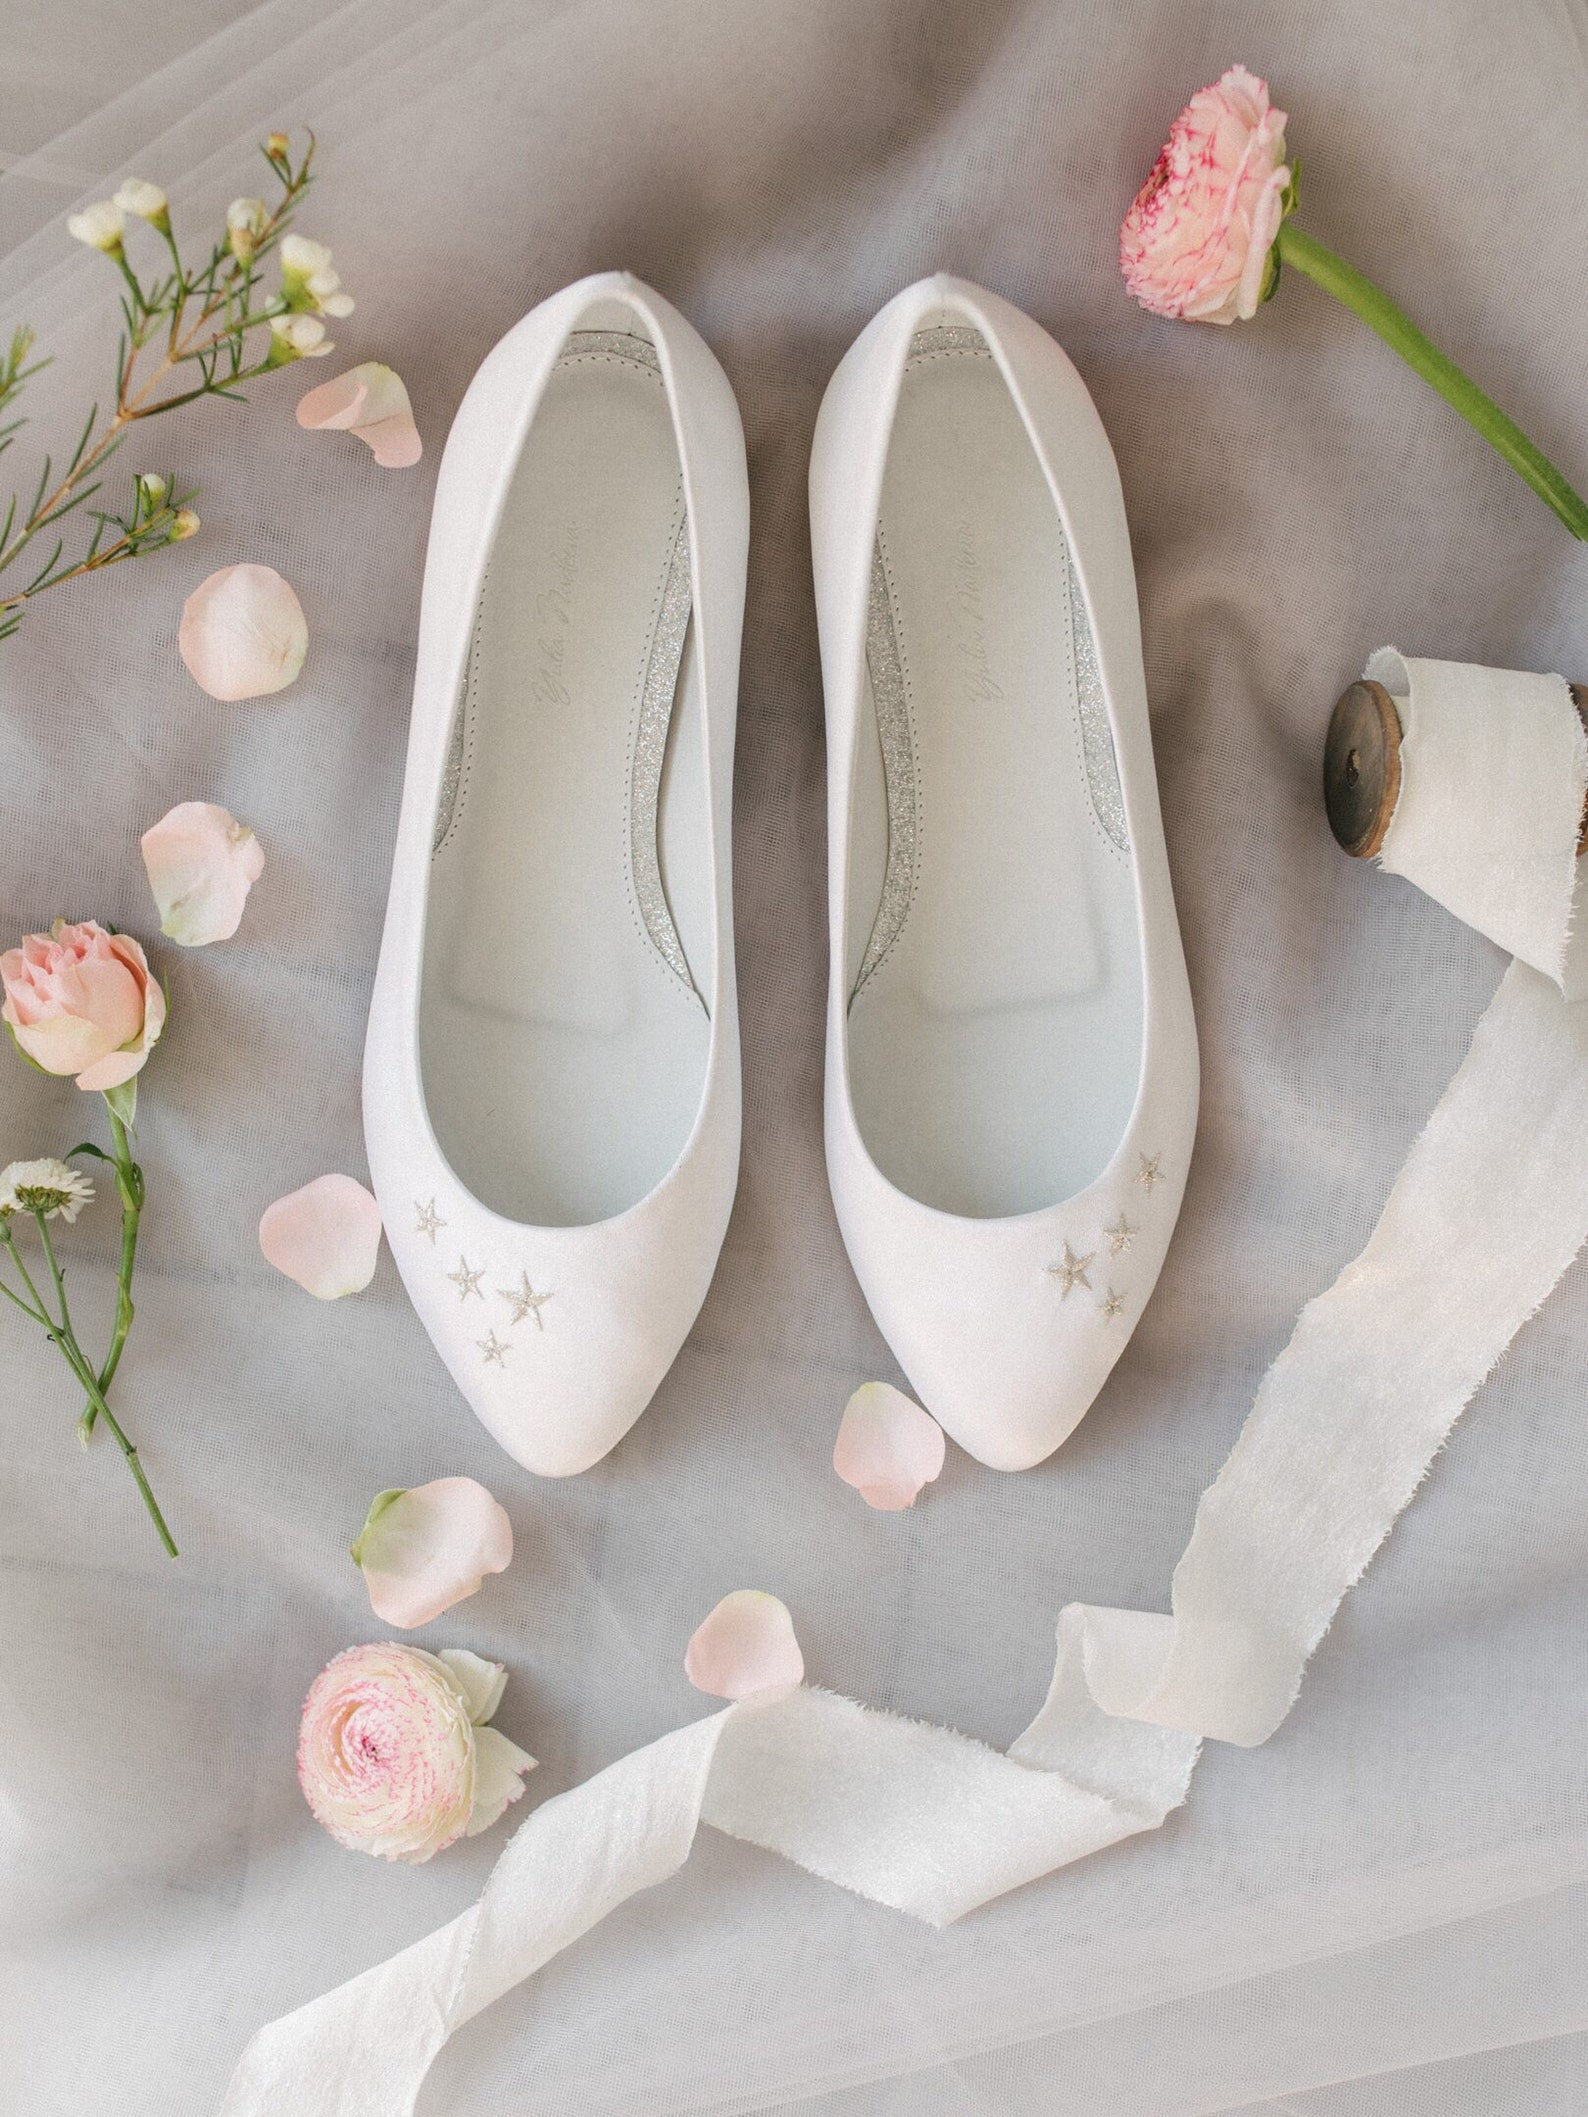 wedding shoes, white wedding shoes, bridal ballet flats, low wedding shoes, bridal flats, wedding flats, silver flats, ballet fl